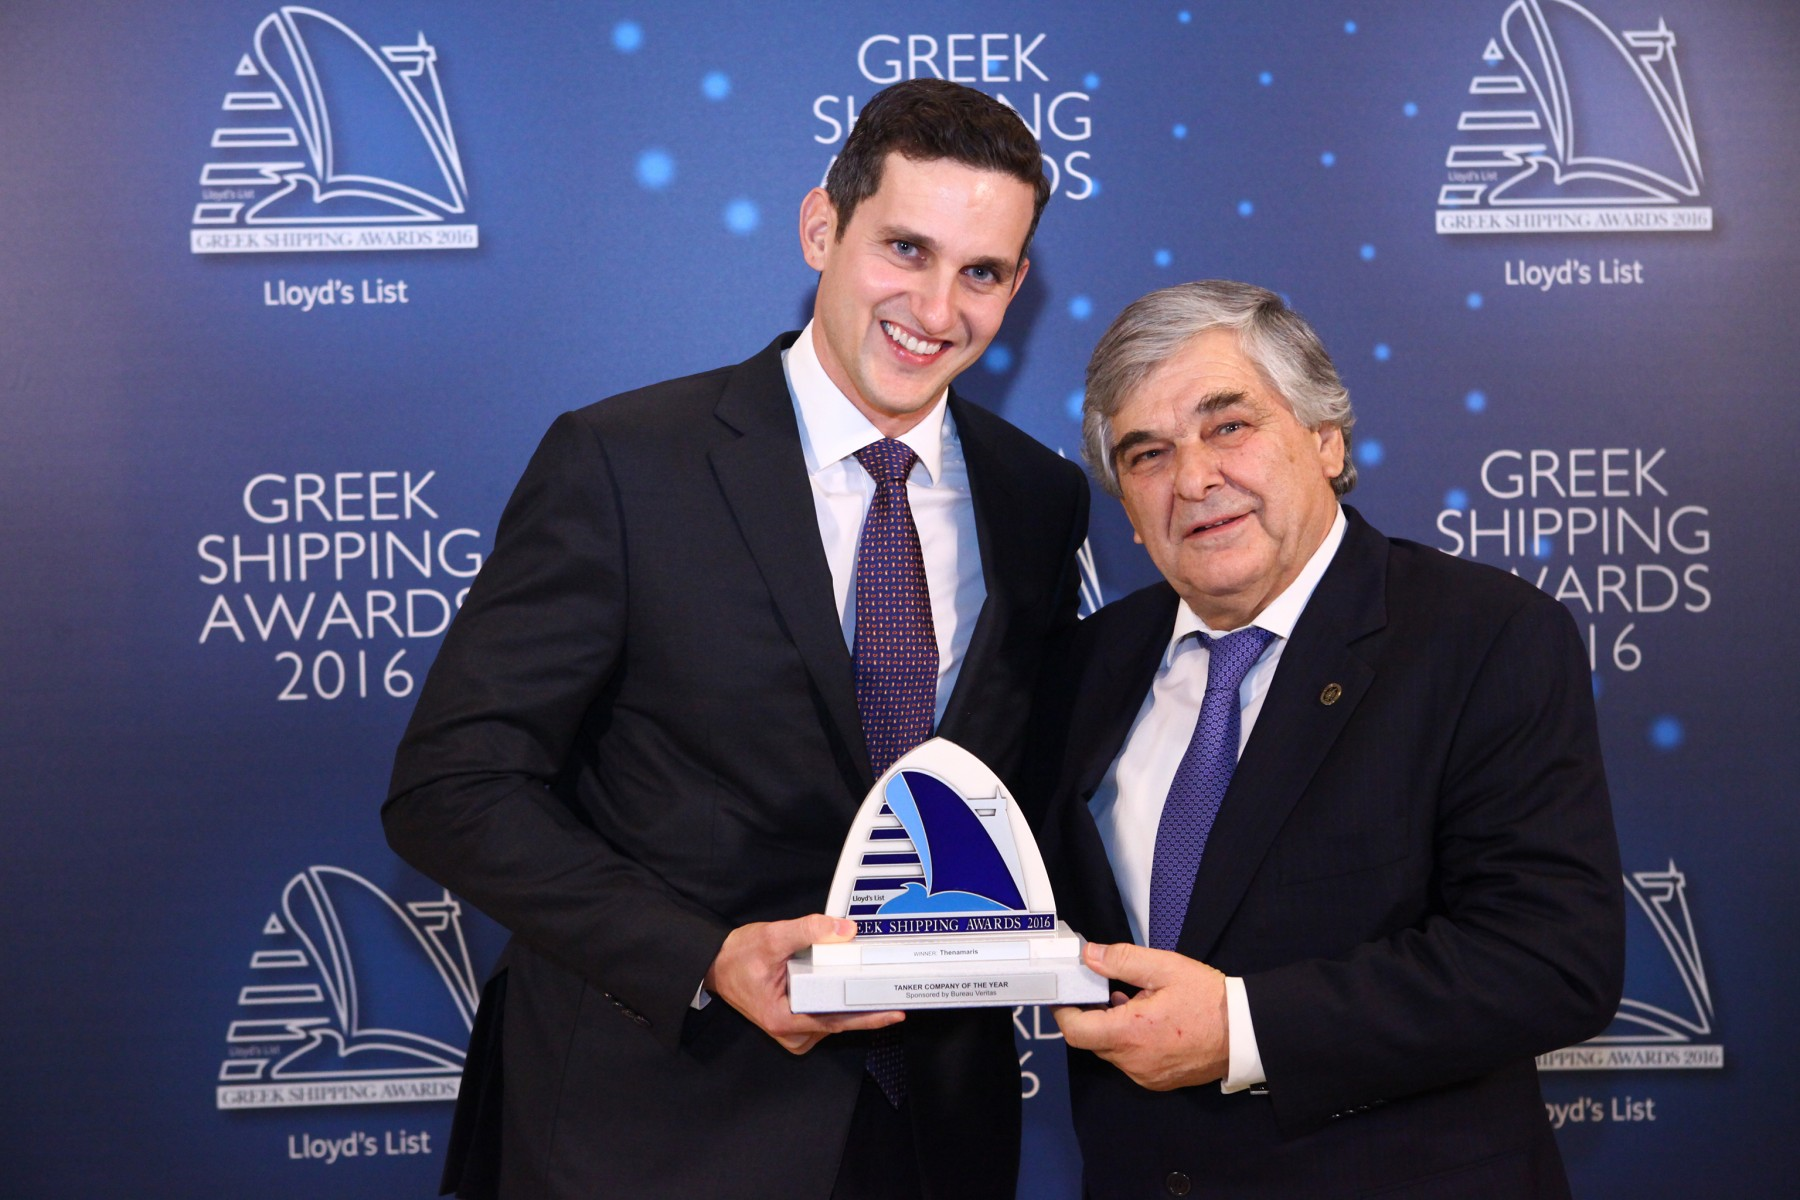 Mr. Nikolas Martinos of Thenamaris accepting the Tanker Company of the Year Award from Mr. Lambros Chahalis of sponsor Bureau Veritas.